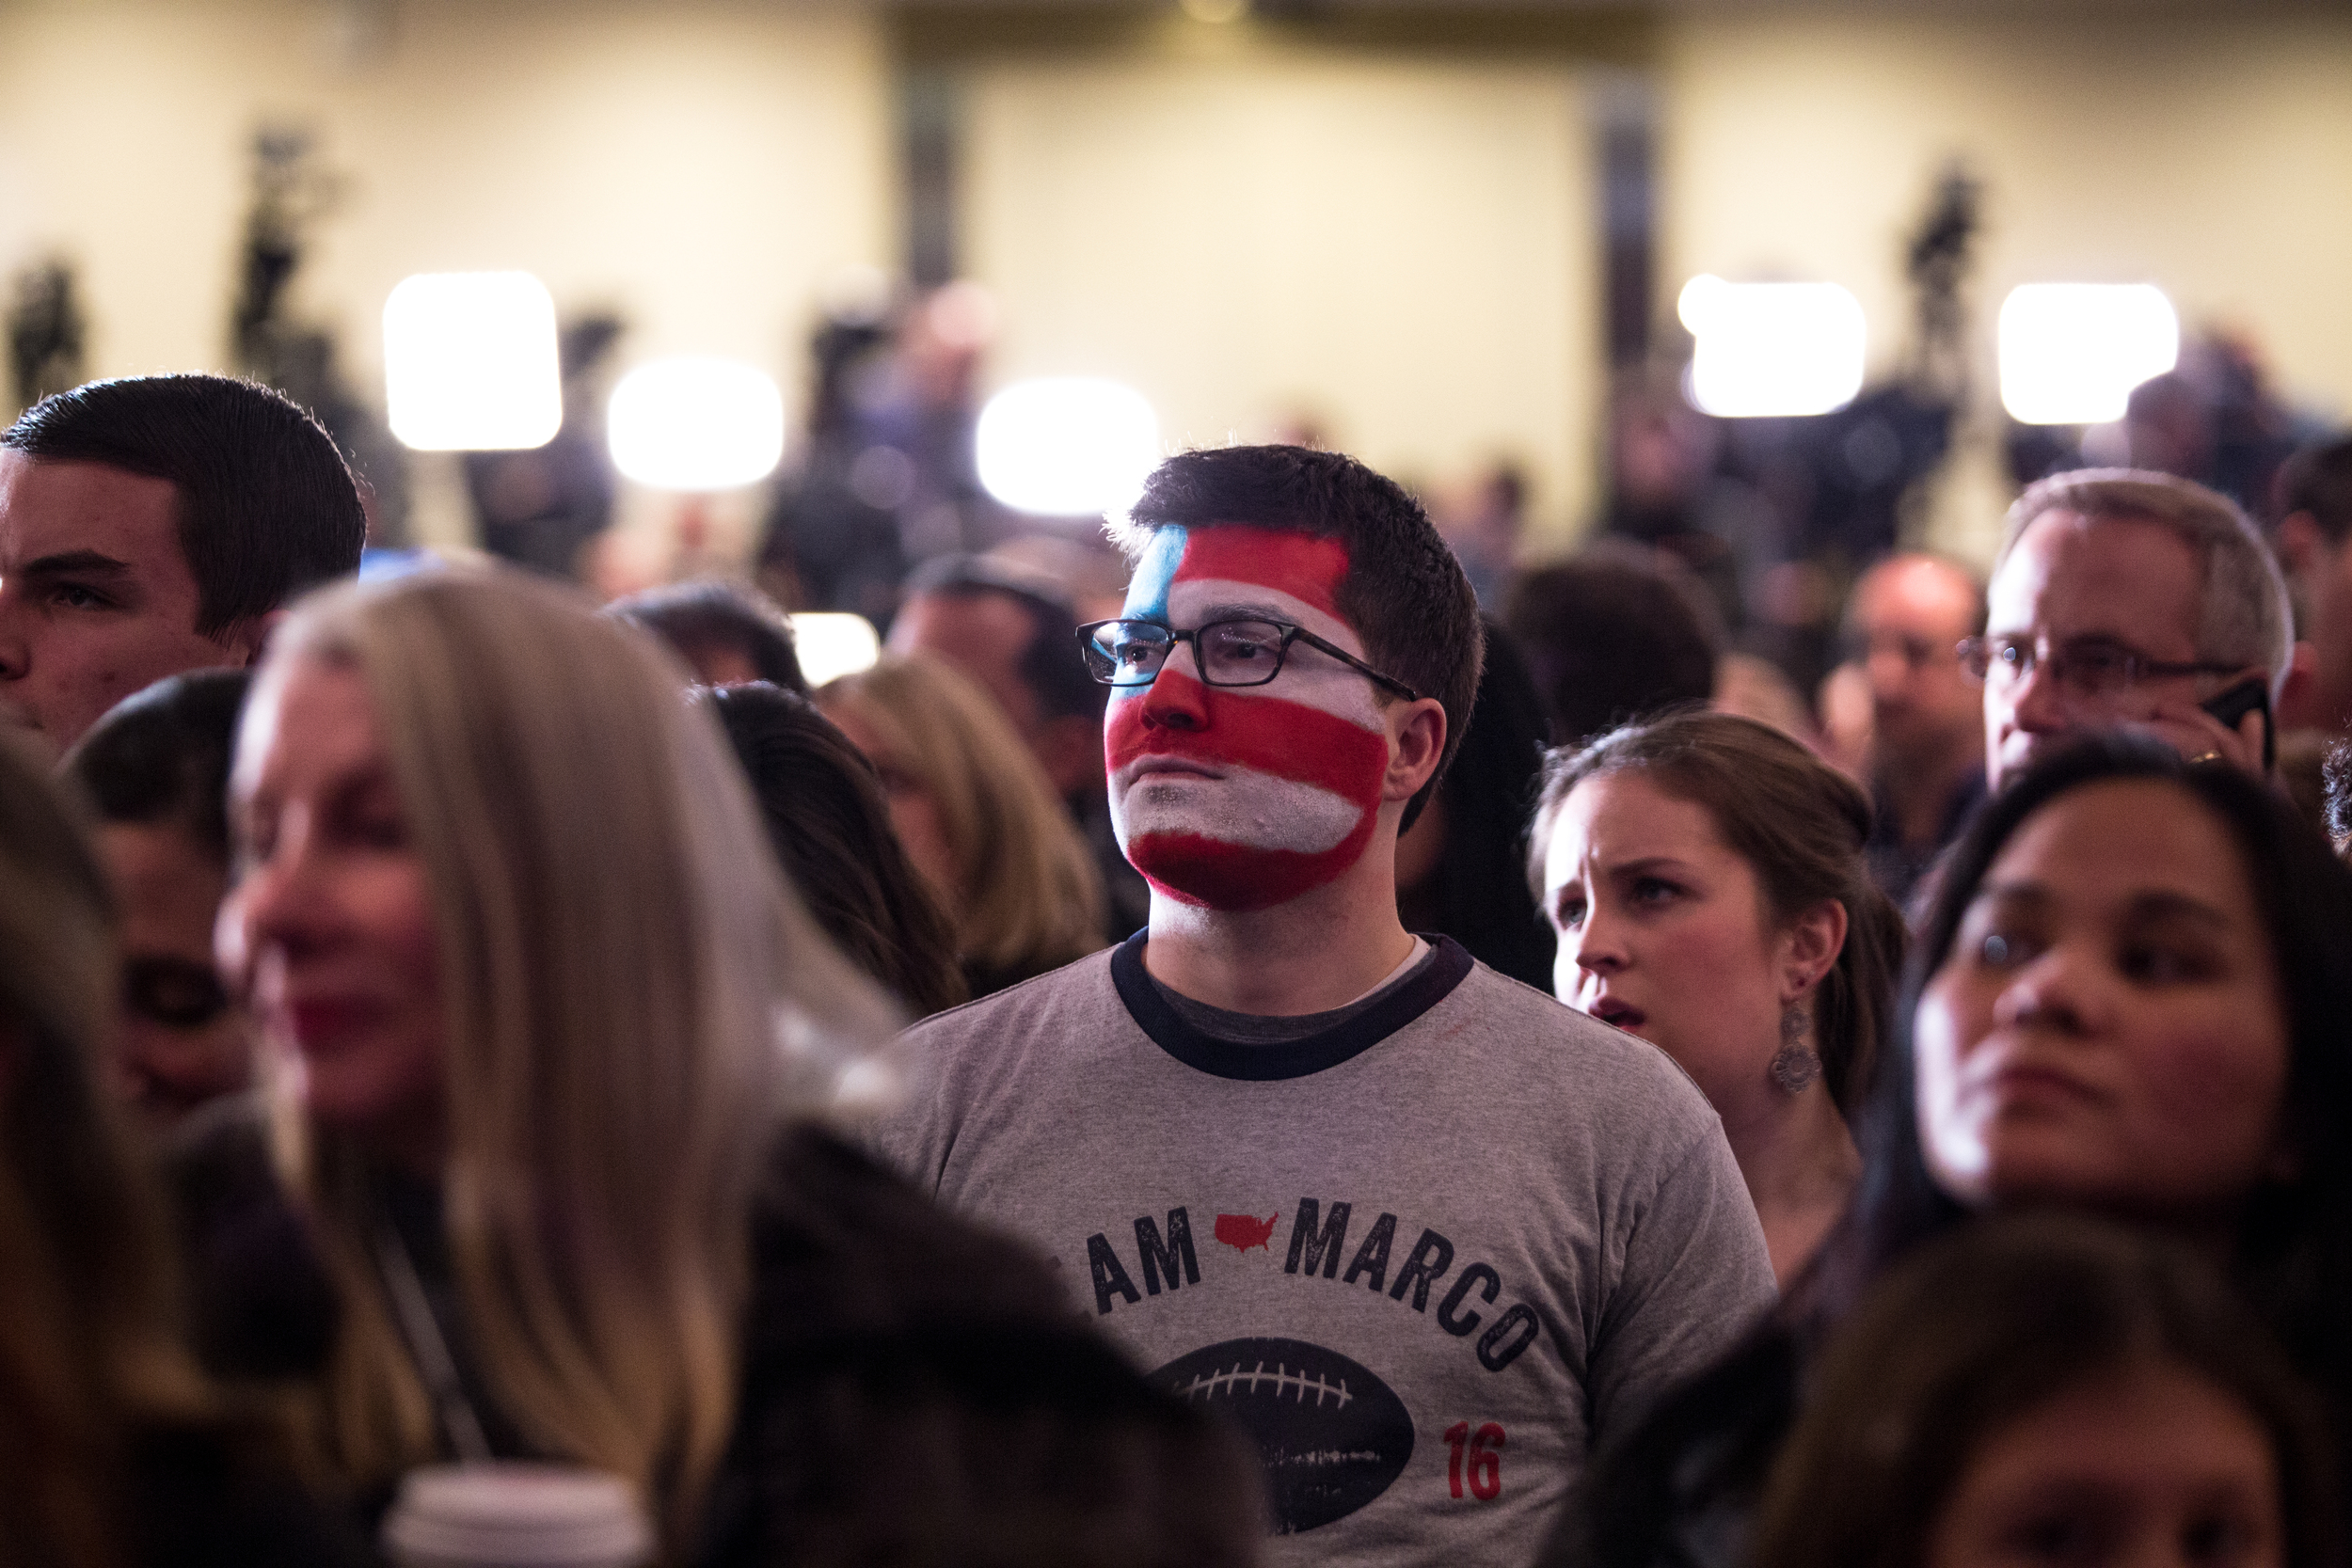 Manchester NH, Feb. 9, 2016 -Michael Skocay, of Cambridge MA, waits for voting results to come in during Marco Rubio's New Hampshire Primary watch party at the Radisson Hotel. Photo by Alexandra Wimley